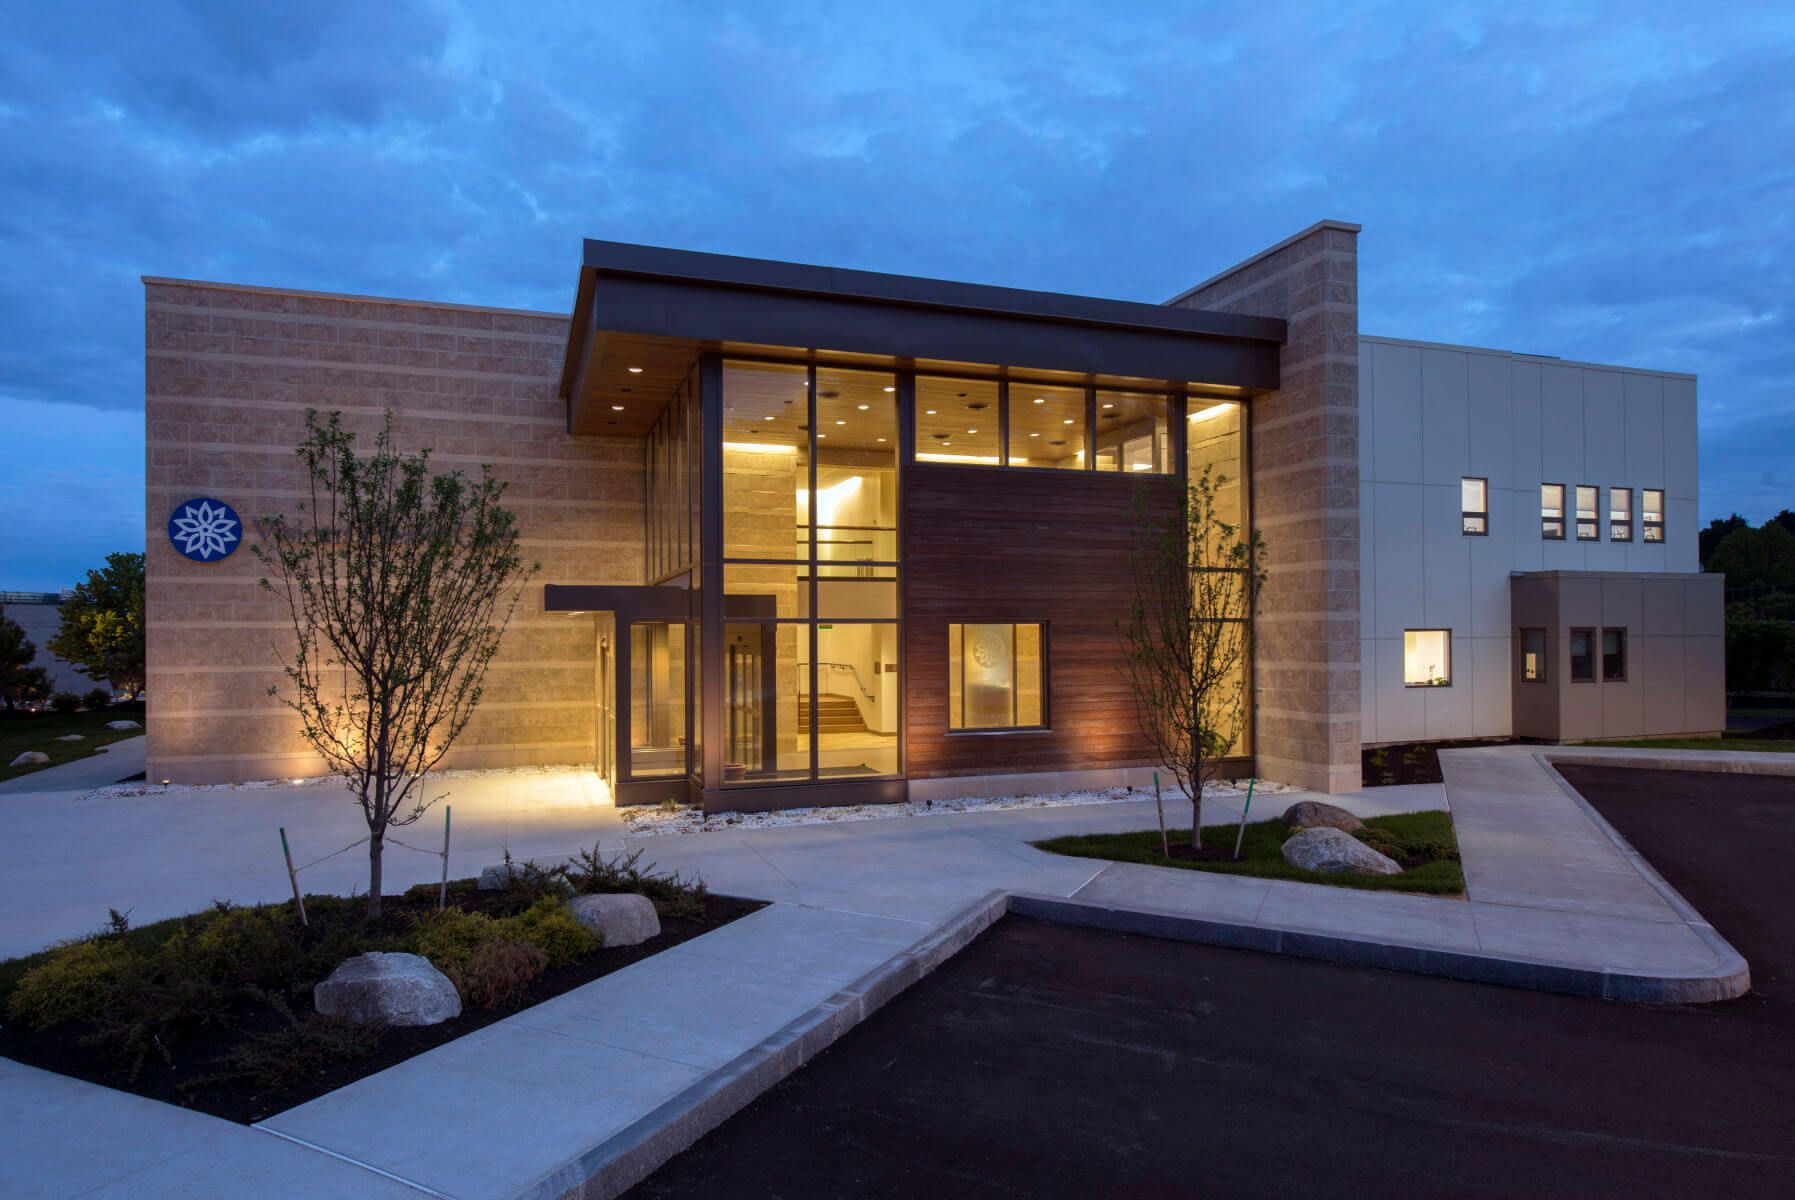 40 Most Impressive Small Office Building Design Ideas Office Building Architecture Building Design Commercial Office Design